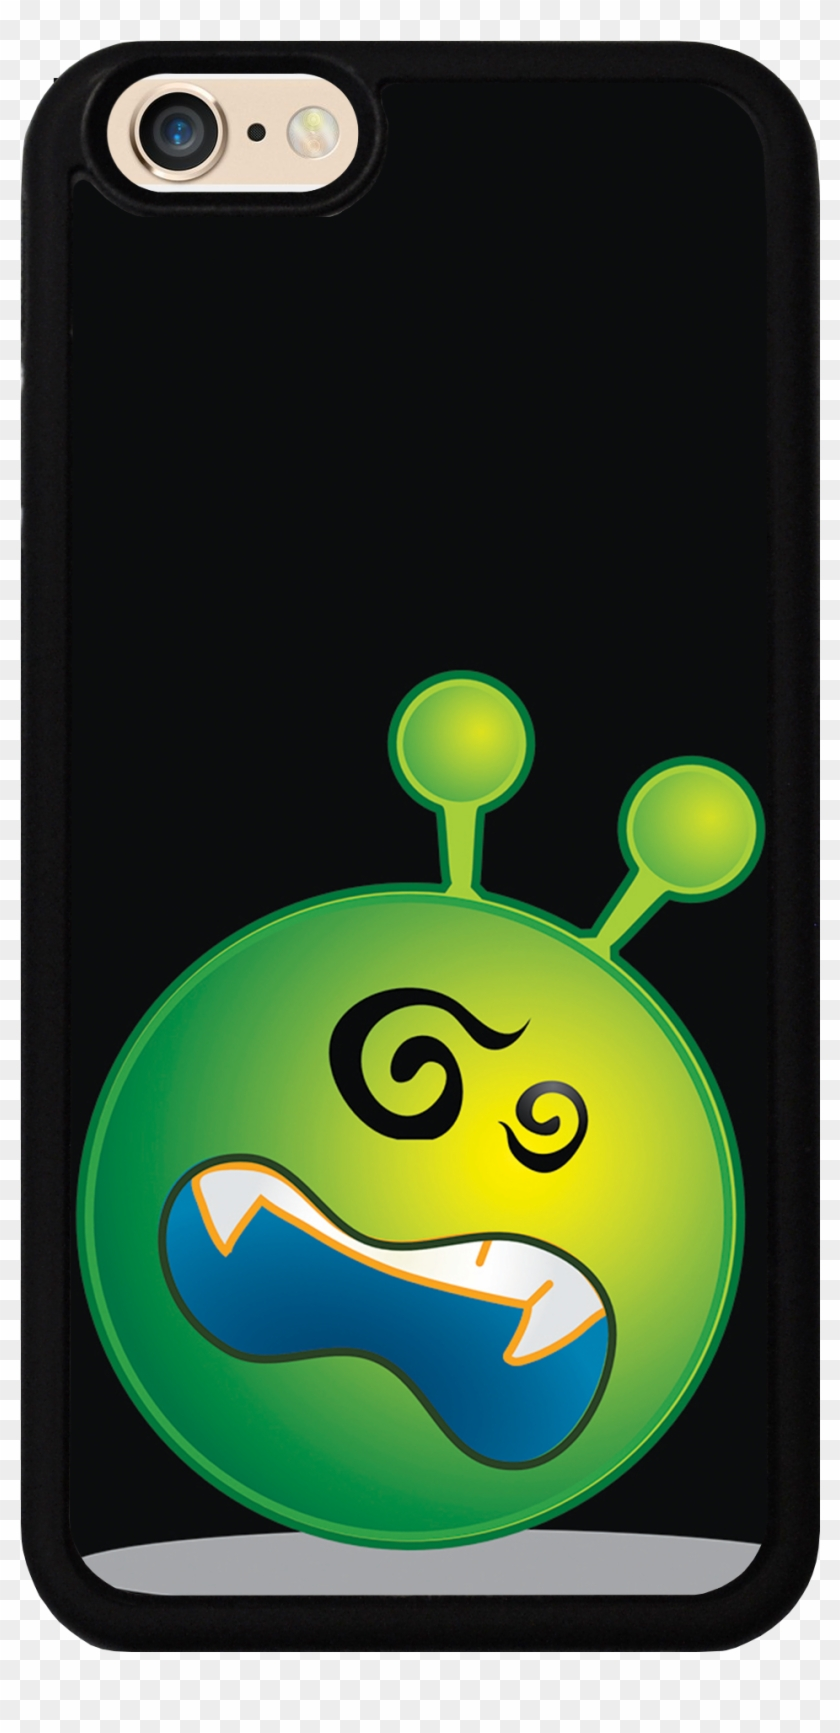 Emoji Confused For Ipad Mini - Mobile Phone Case, HD Png Download